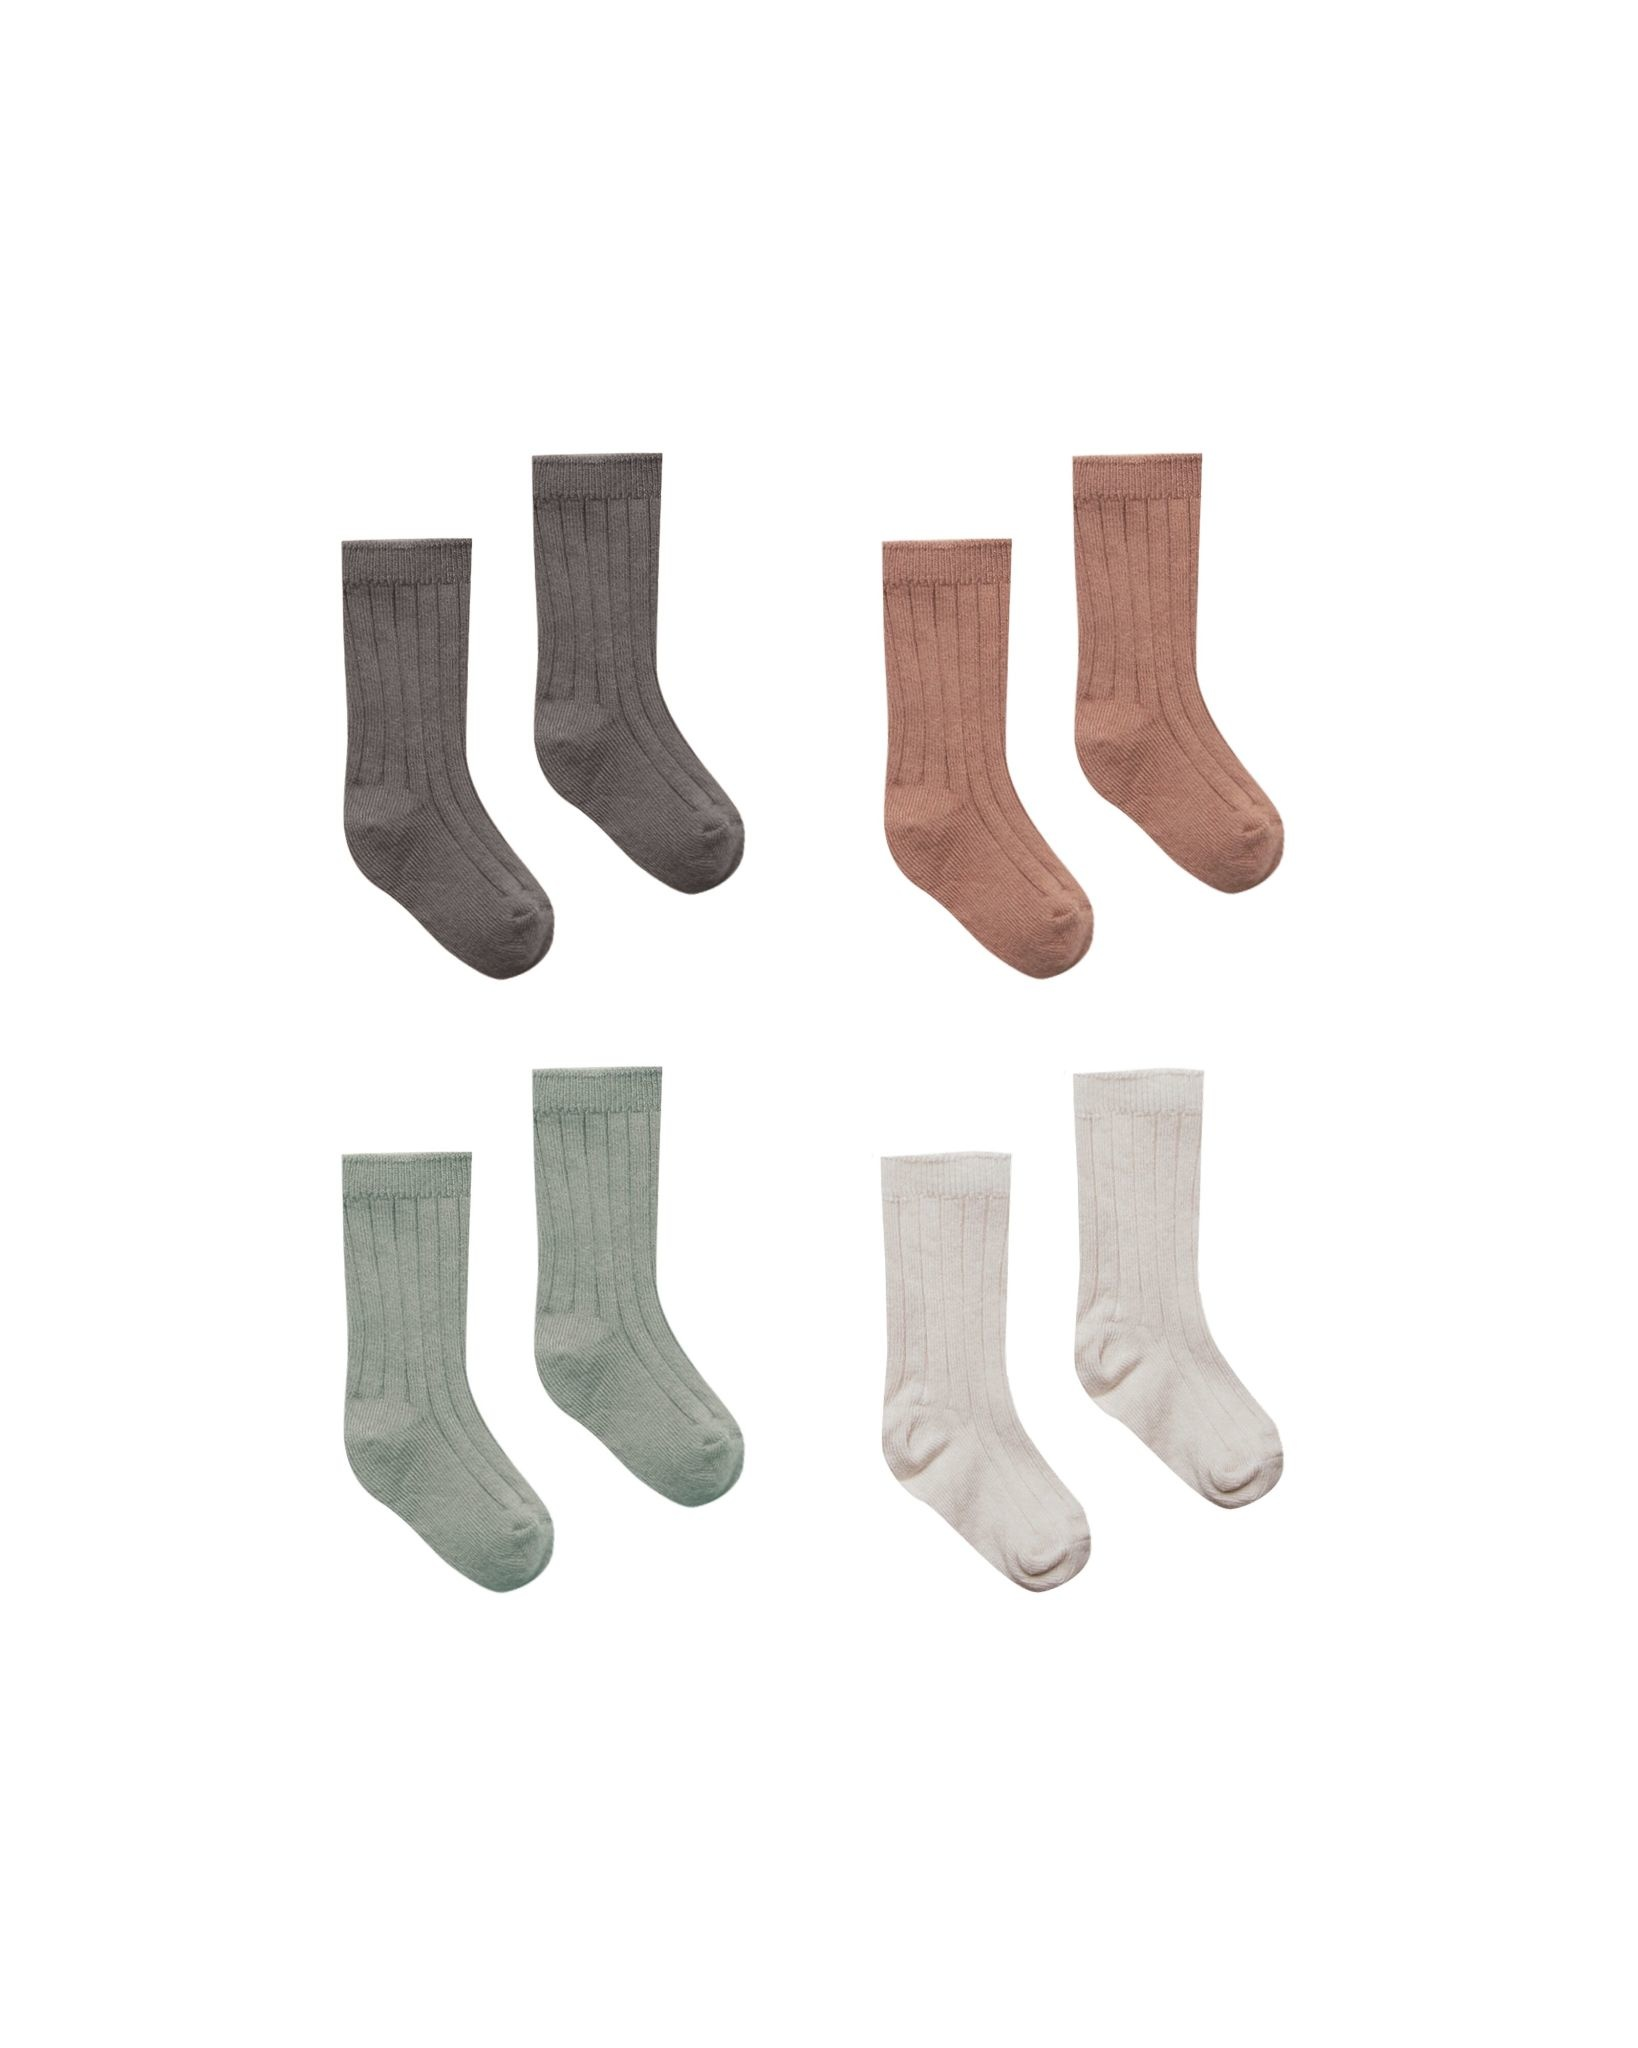 QUINCY MAE Organic Ribbed Knit Baby Socks